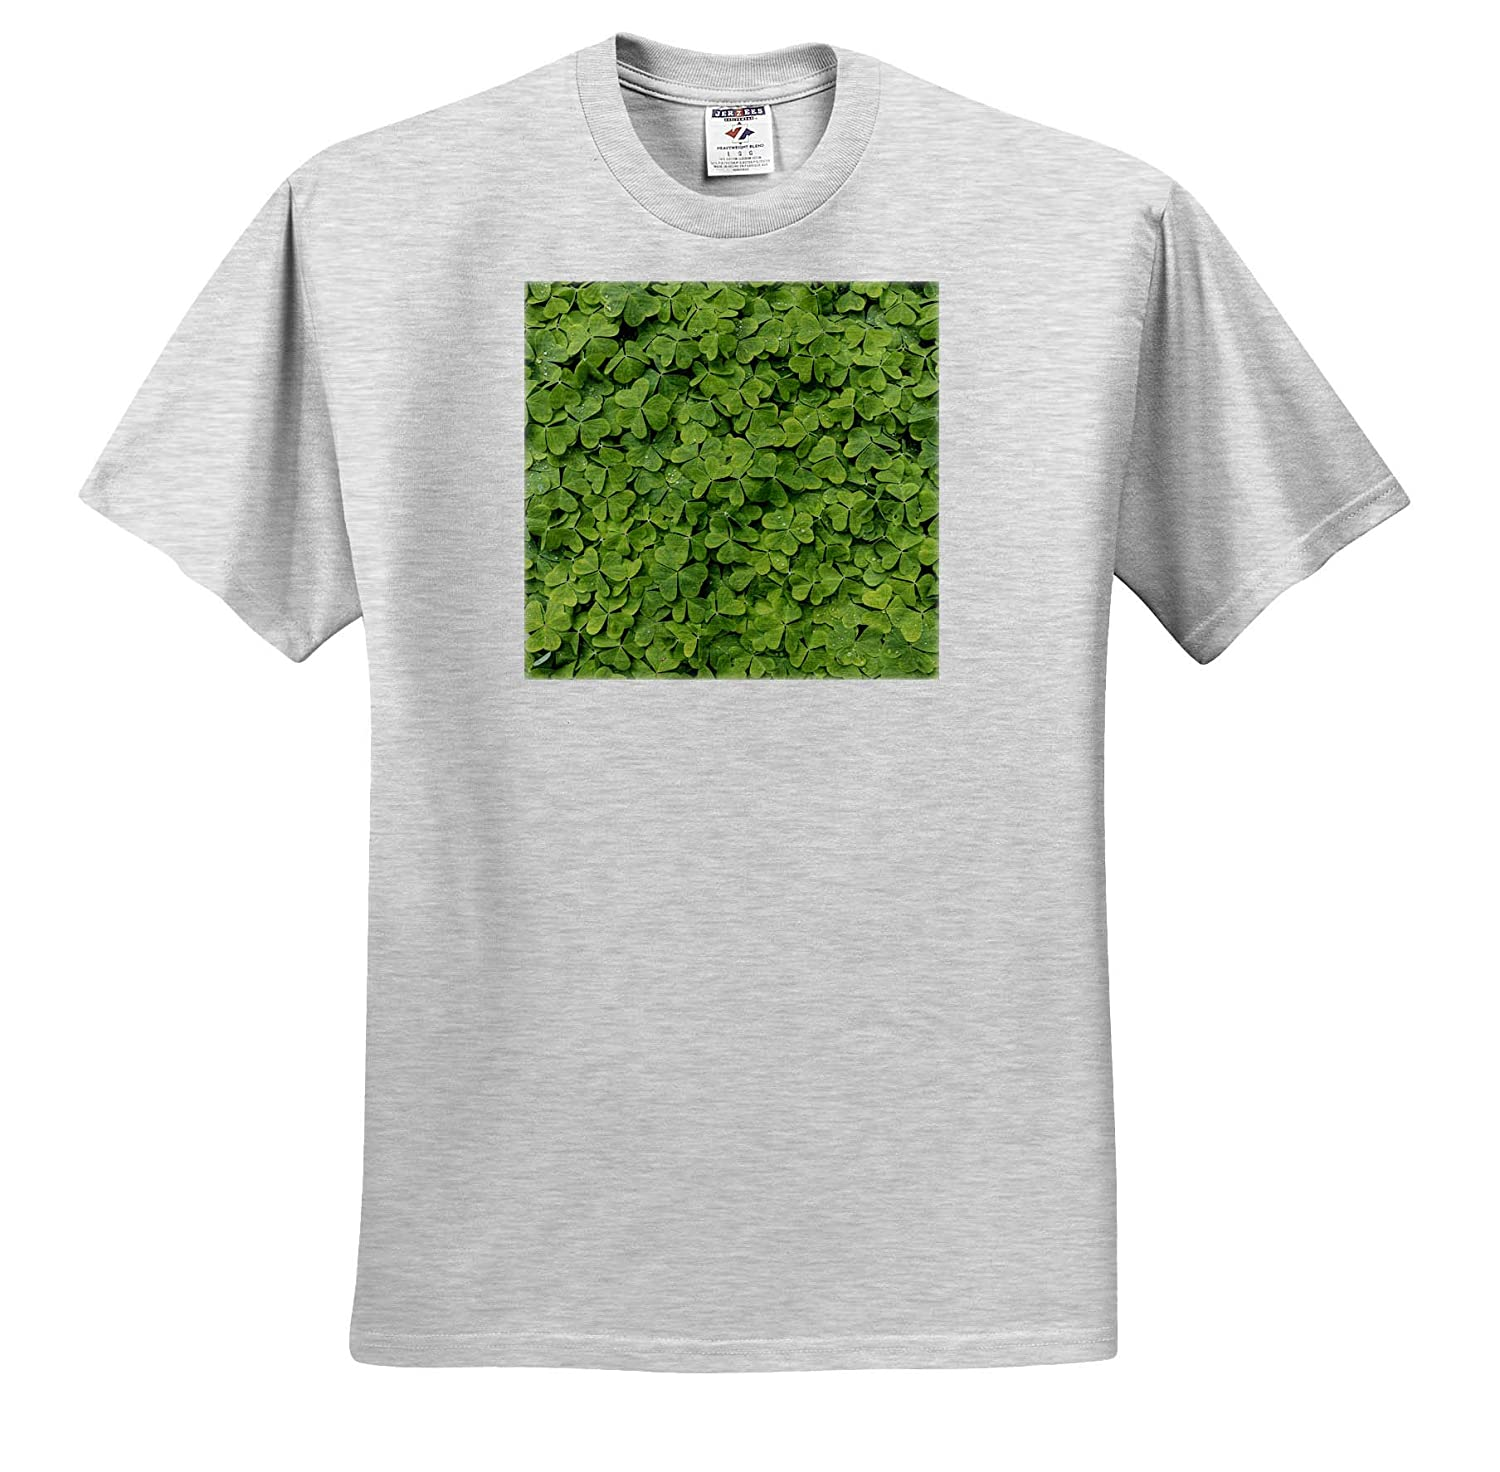 ts/_315128 Natural Patterns Close-up of Dew on Oxalis in Spring - Adult T-Shirt XL 3dRose Danita Delimont